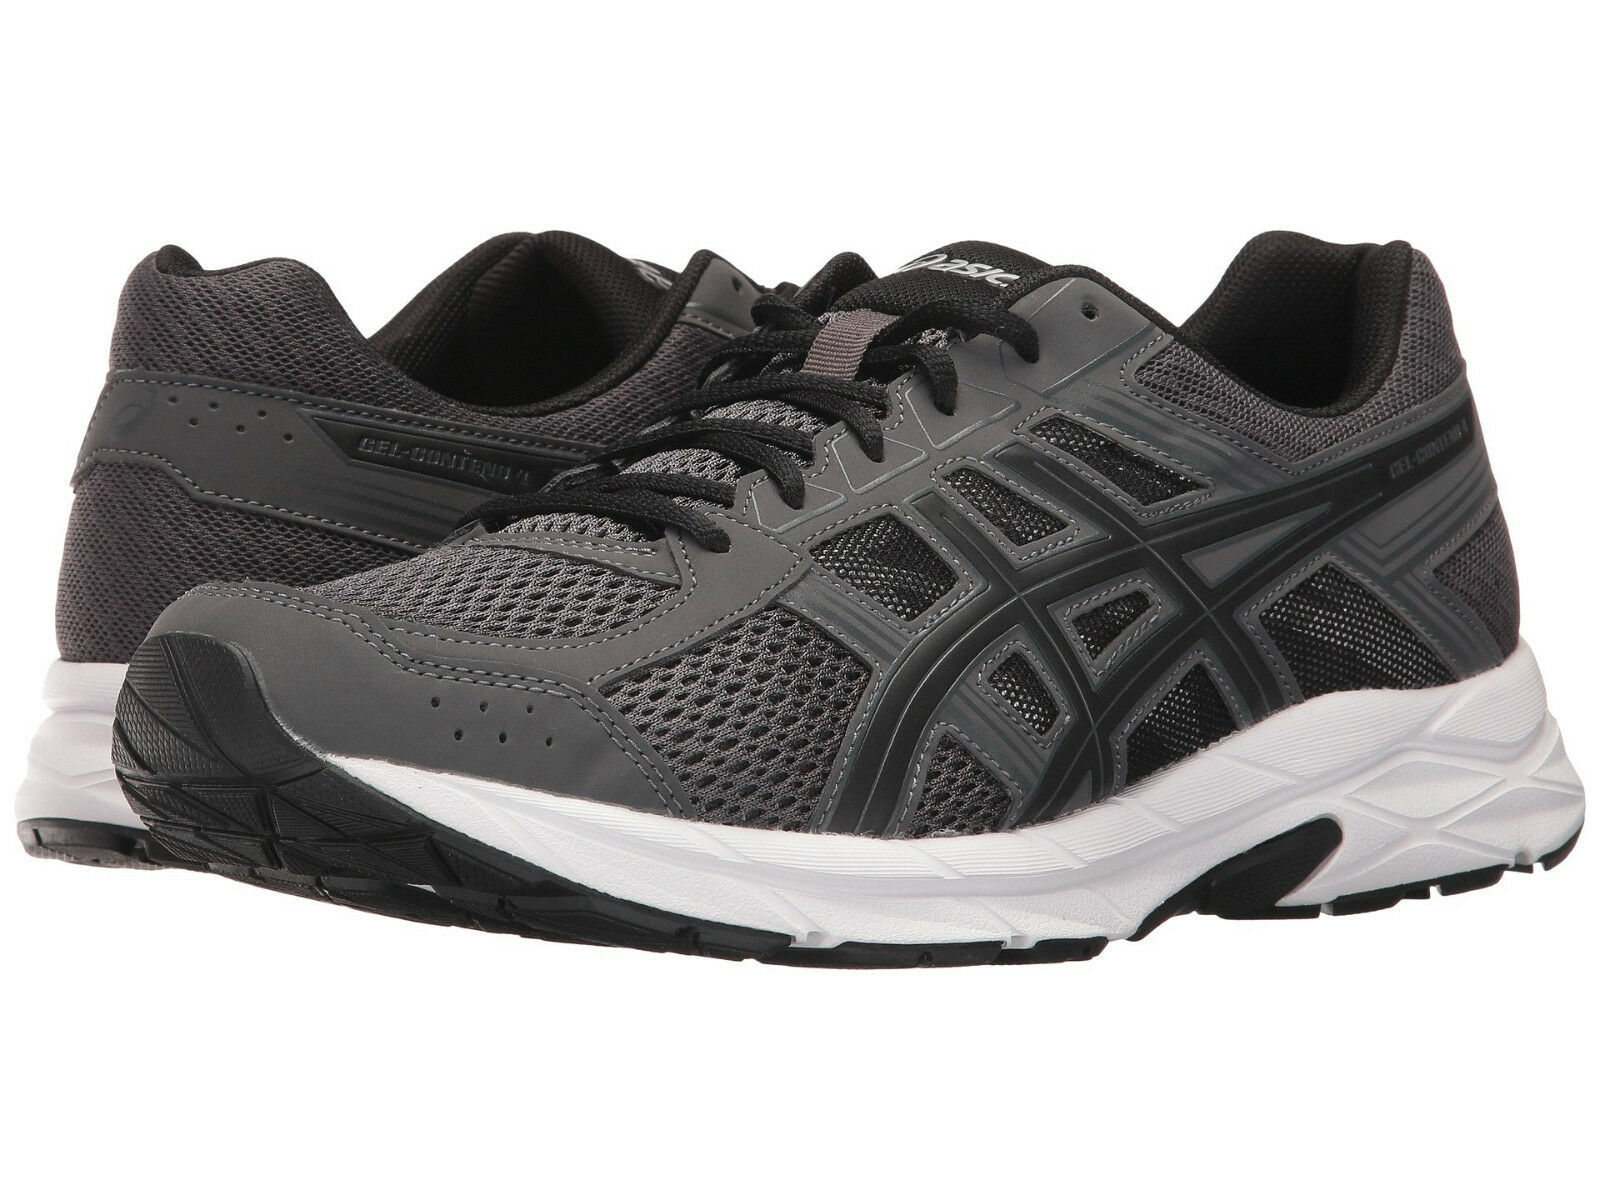 Asics Gel Contend 4 Grey/Black/Carbon Men's Running Shoe Dark Grey/Black/Carbon 4 Size 11 0be1b3